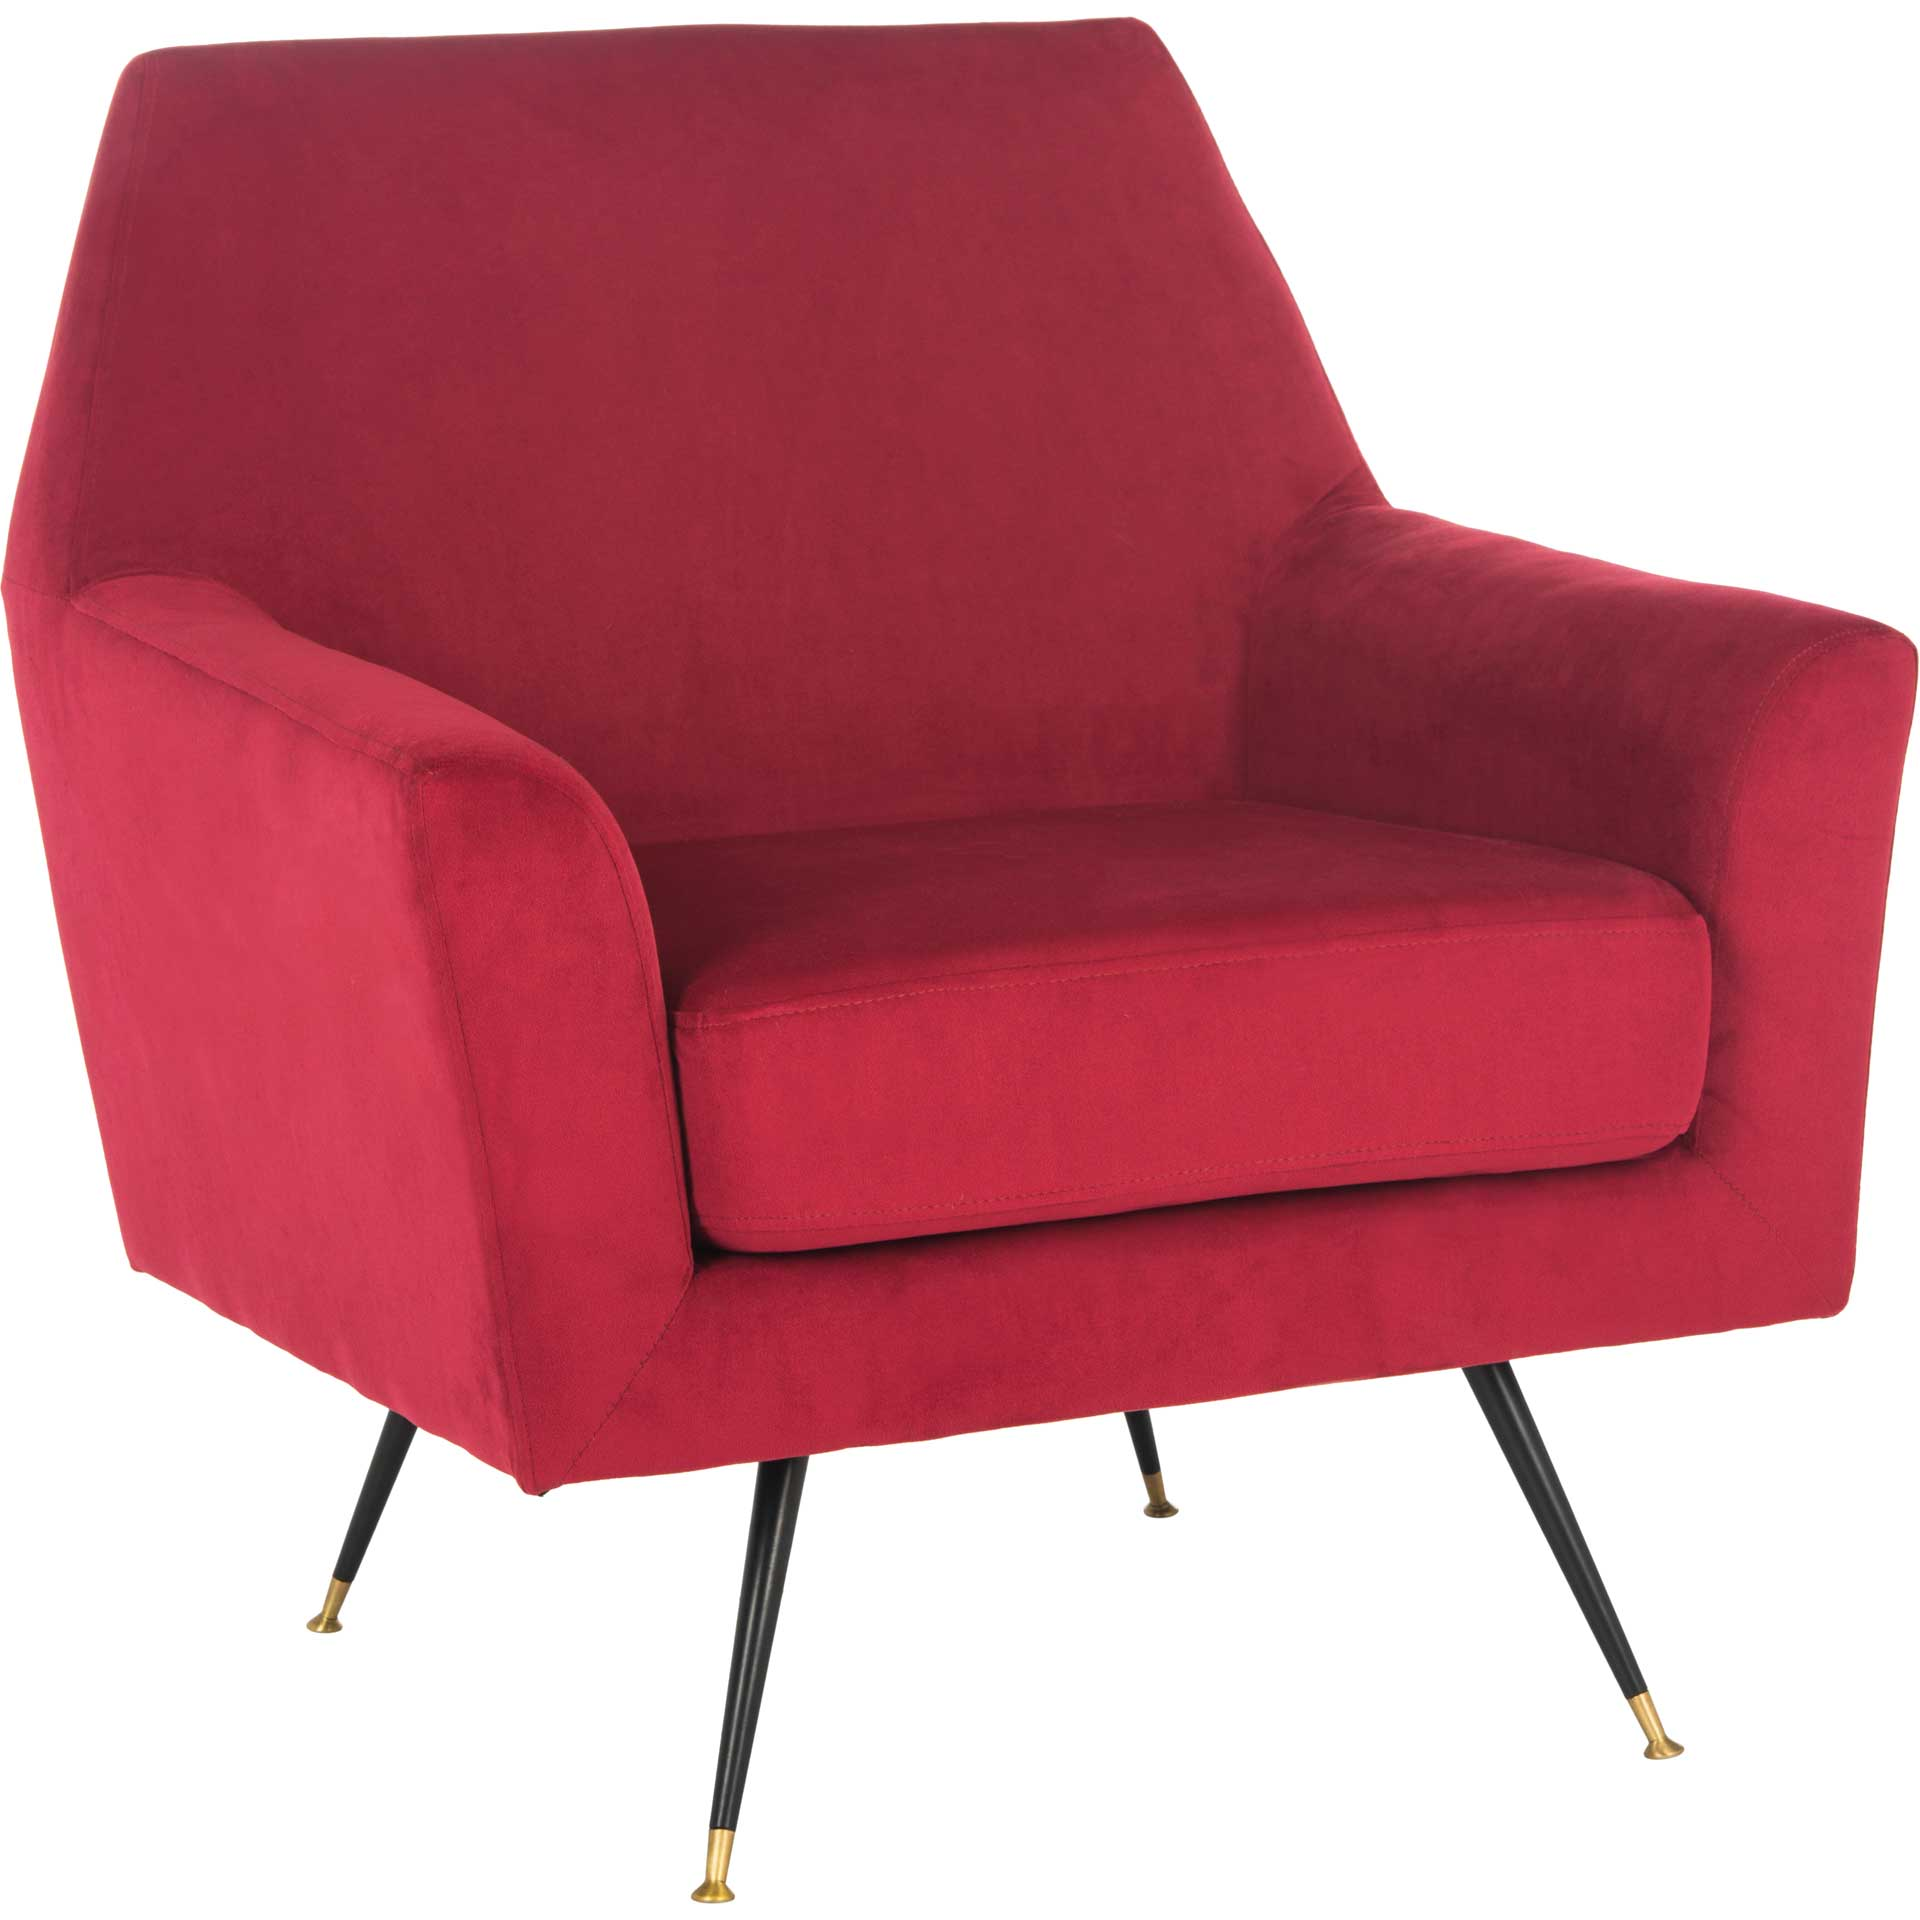 Nynette Velvet Accent Chair Maroon